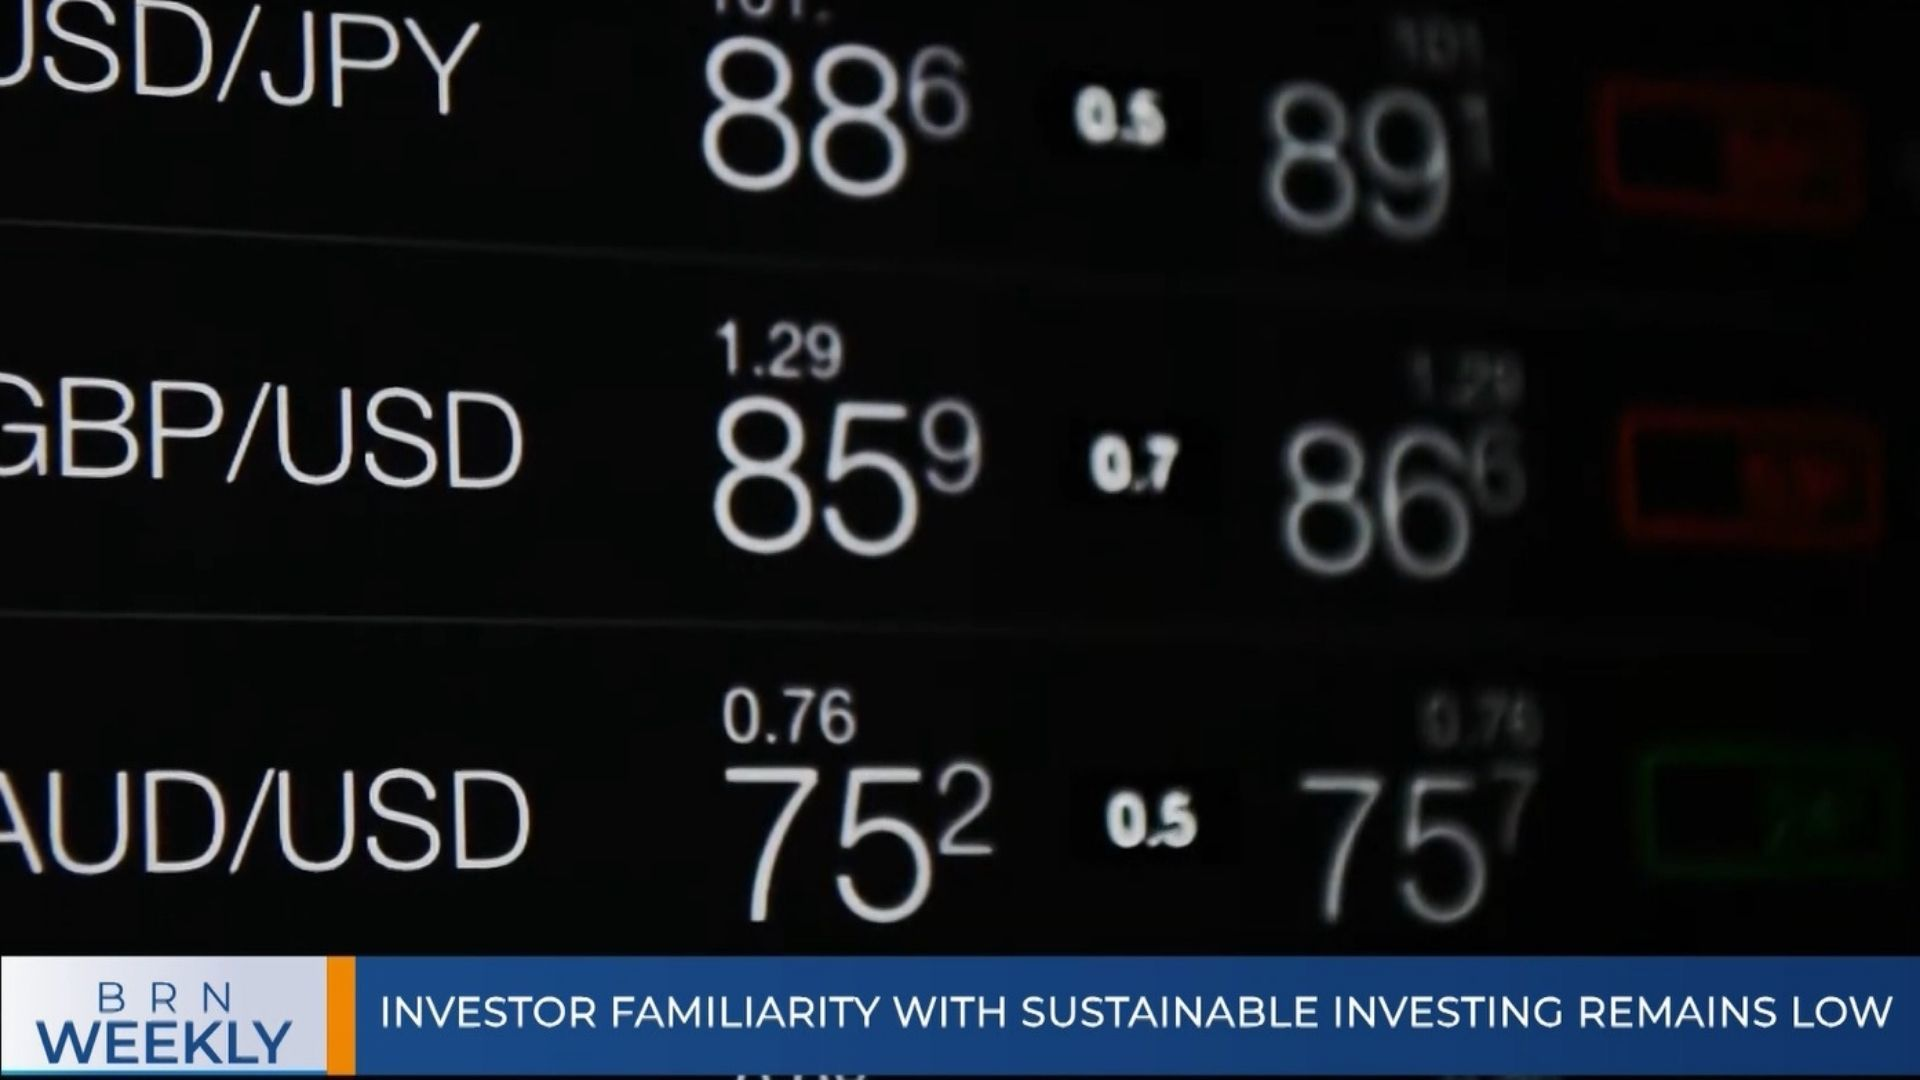 BRN AM   Investor familiarity with sustainable investing remains low